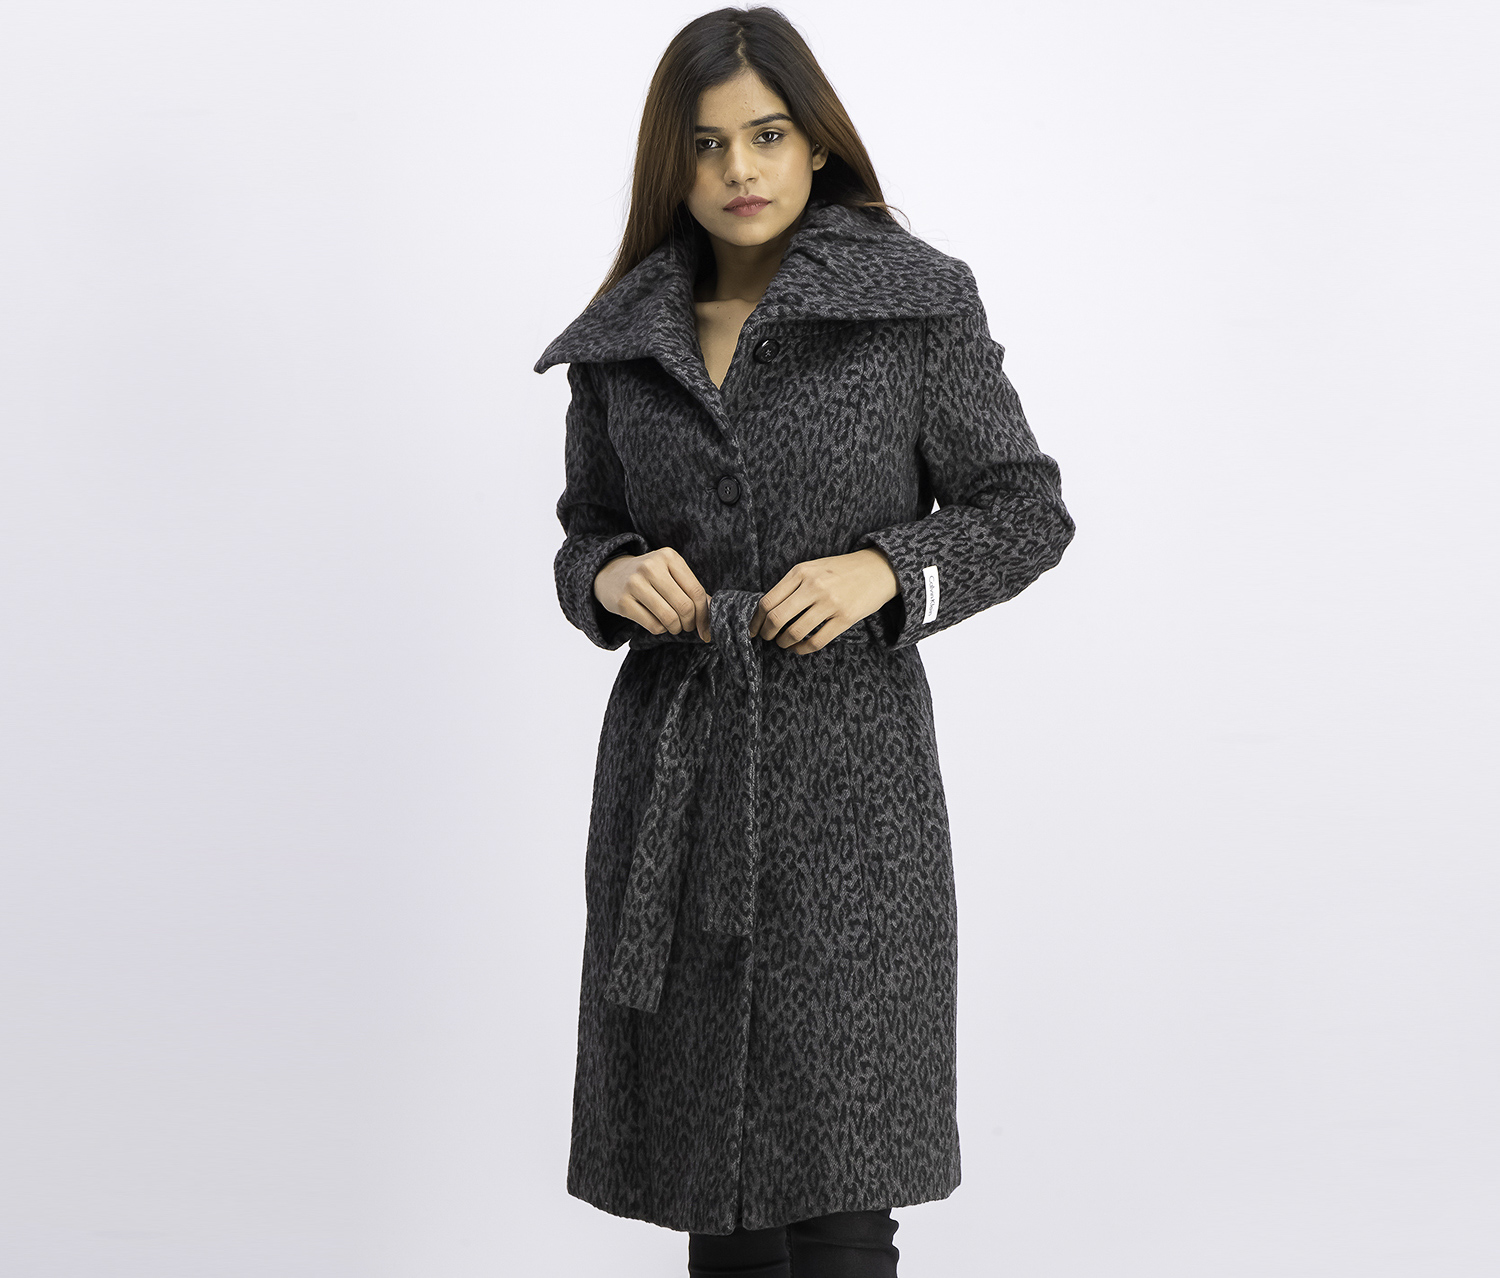 Women's Belted Trench Coat, Black/Gray